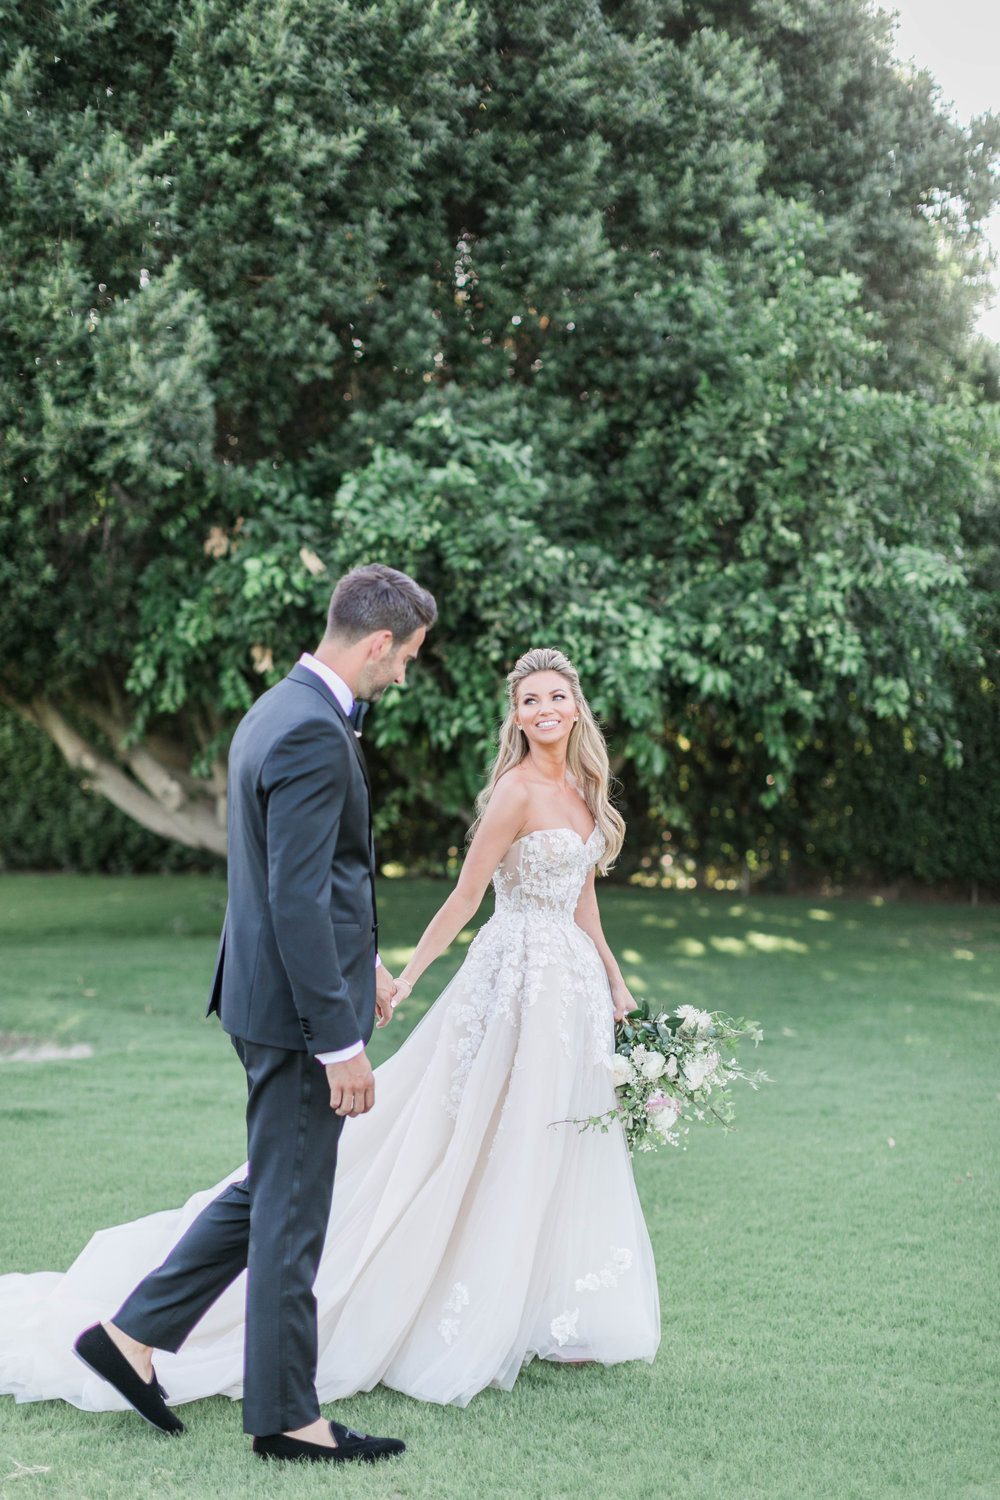 Amber Lancaster's Parker Palm Springs Wedding | Laura Moll Photography | Michelle Garibay Events